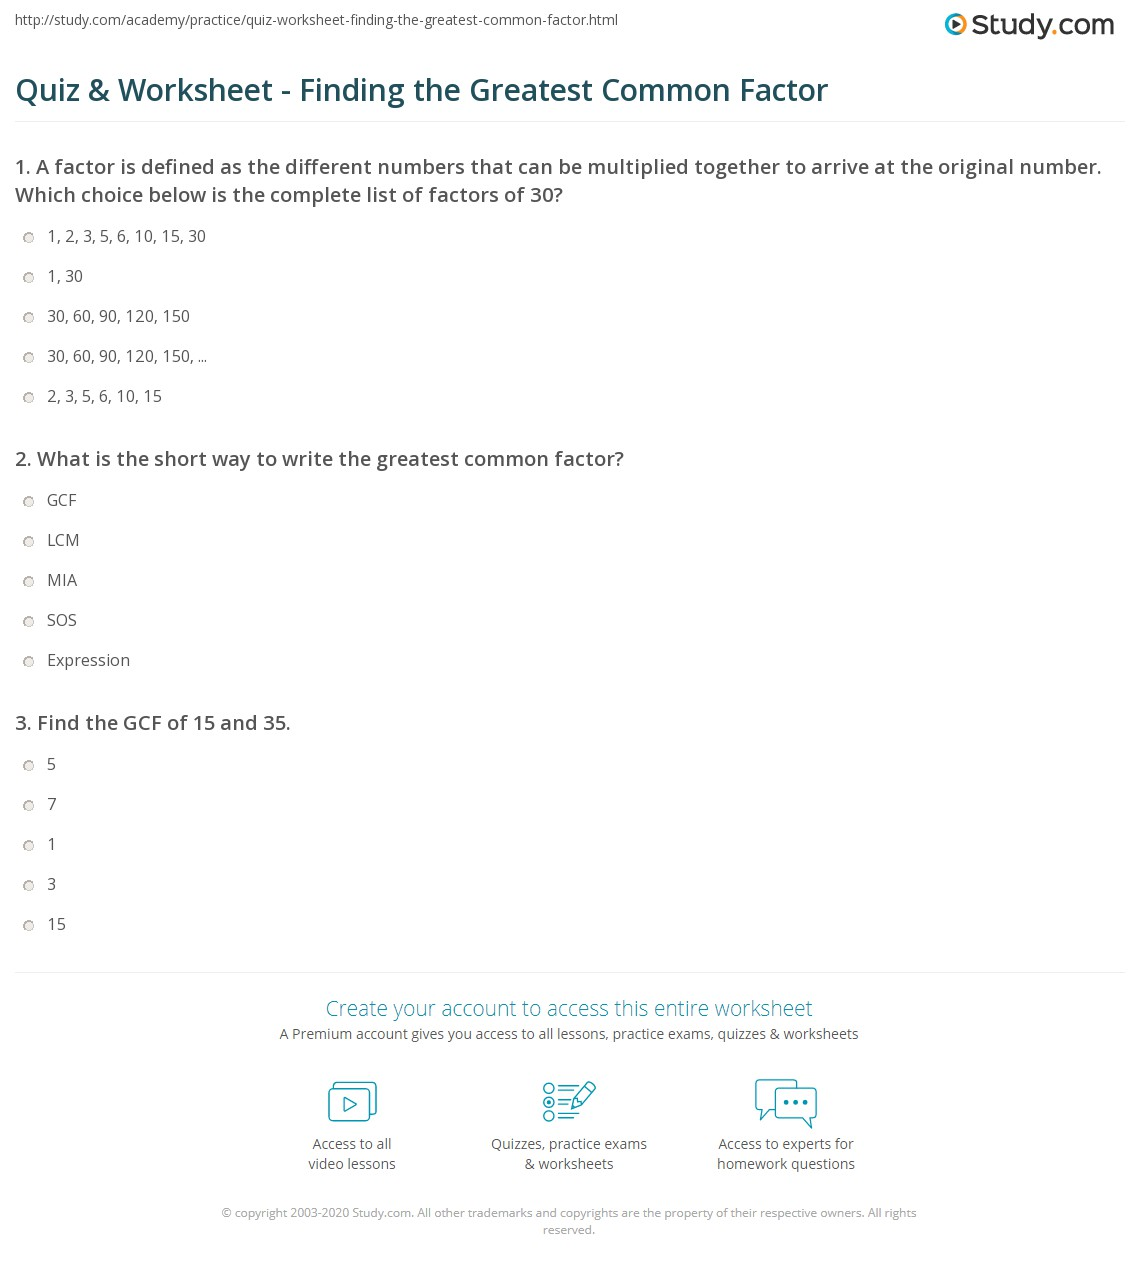 Worksheets Gcf Math Worksheets quiz worksheet finding the greatest common factor study com print how to find worksheet